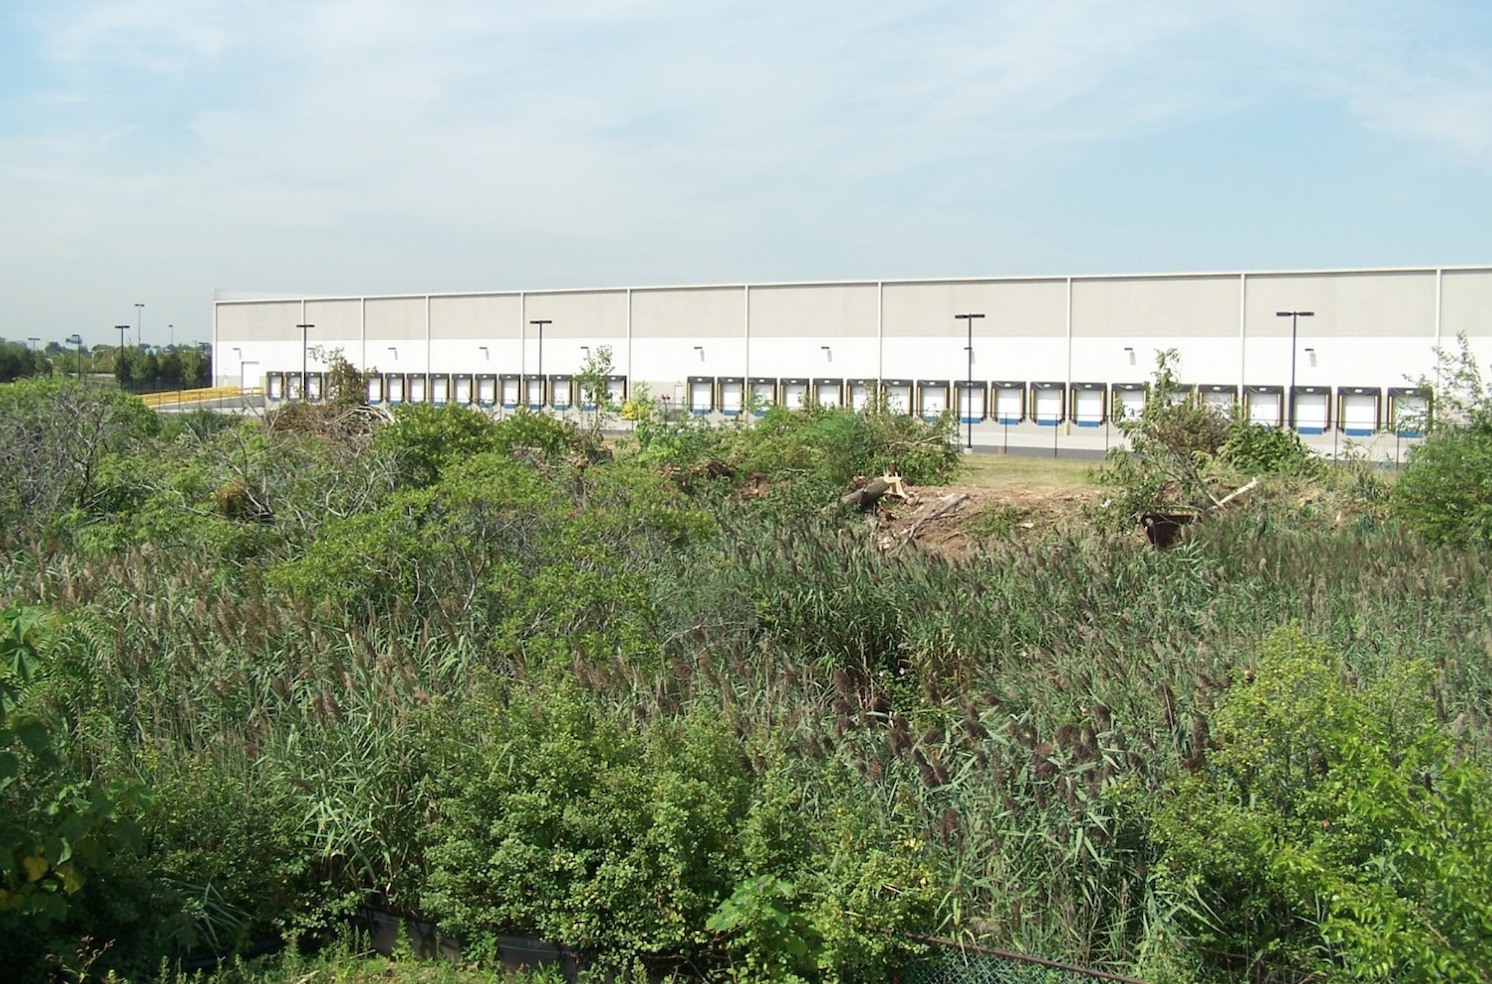 The Elizabeth Seaport Business Park site was comprised of a monoculture of Phragmites australis, also known as Common Reed.